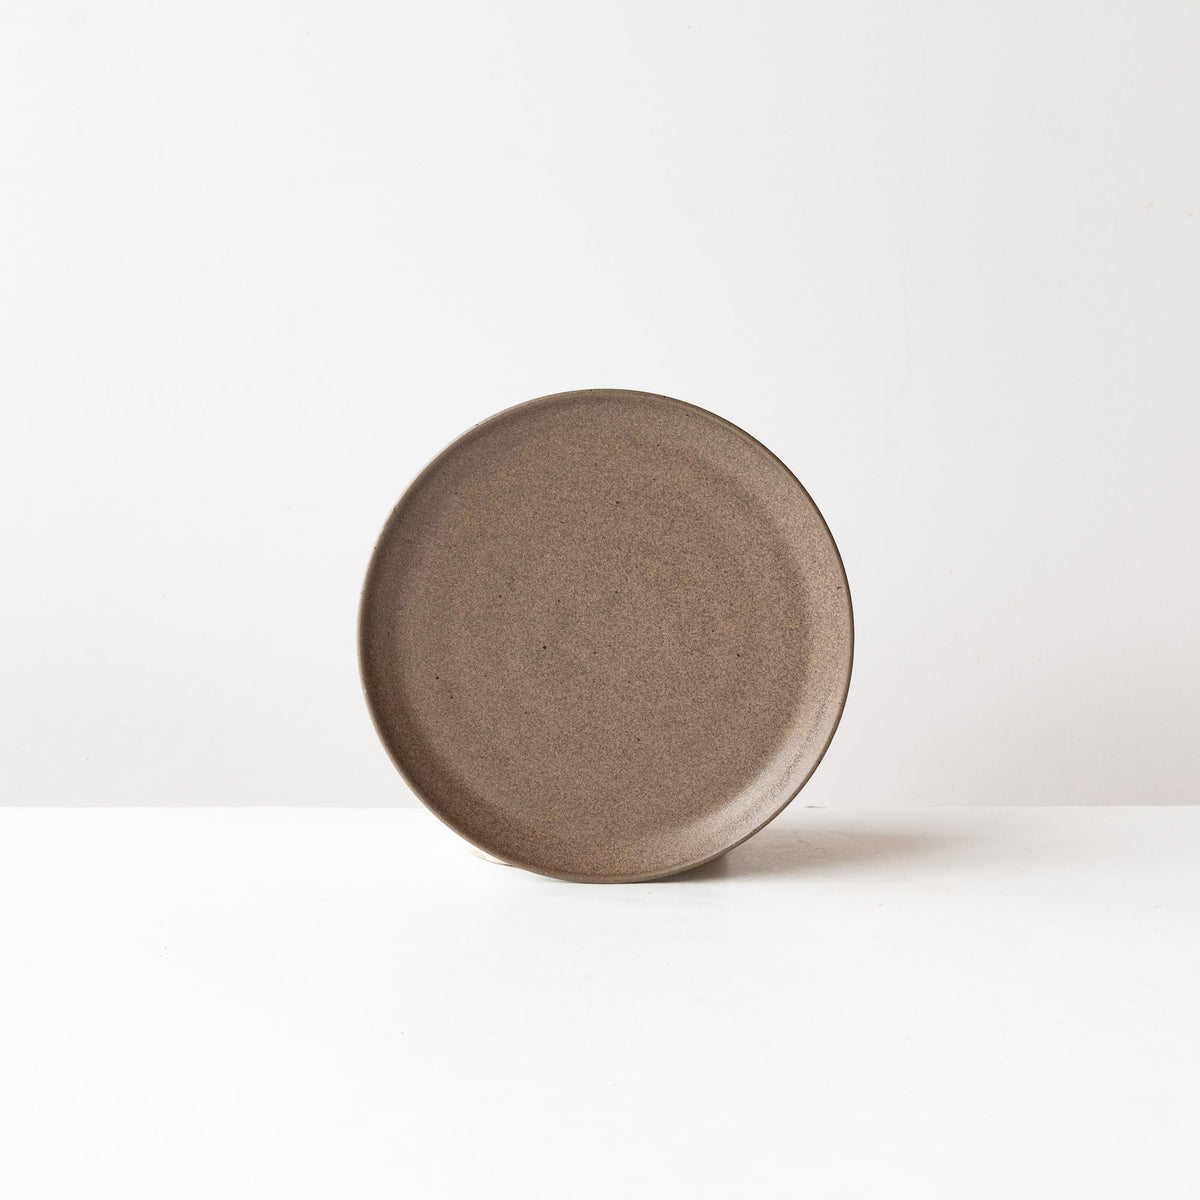 Taupe - Handmade Grey Stoneware Small Plate - Sold by Chic & Basta